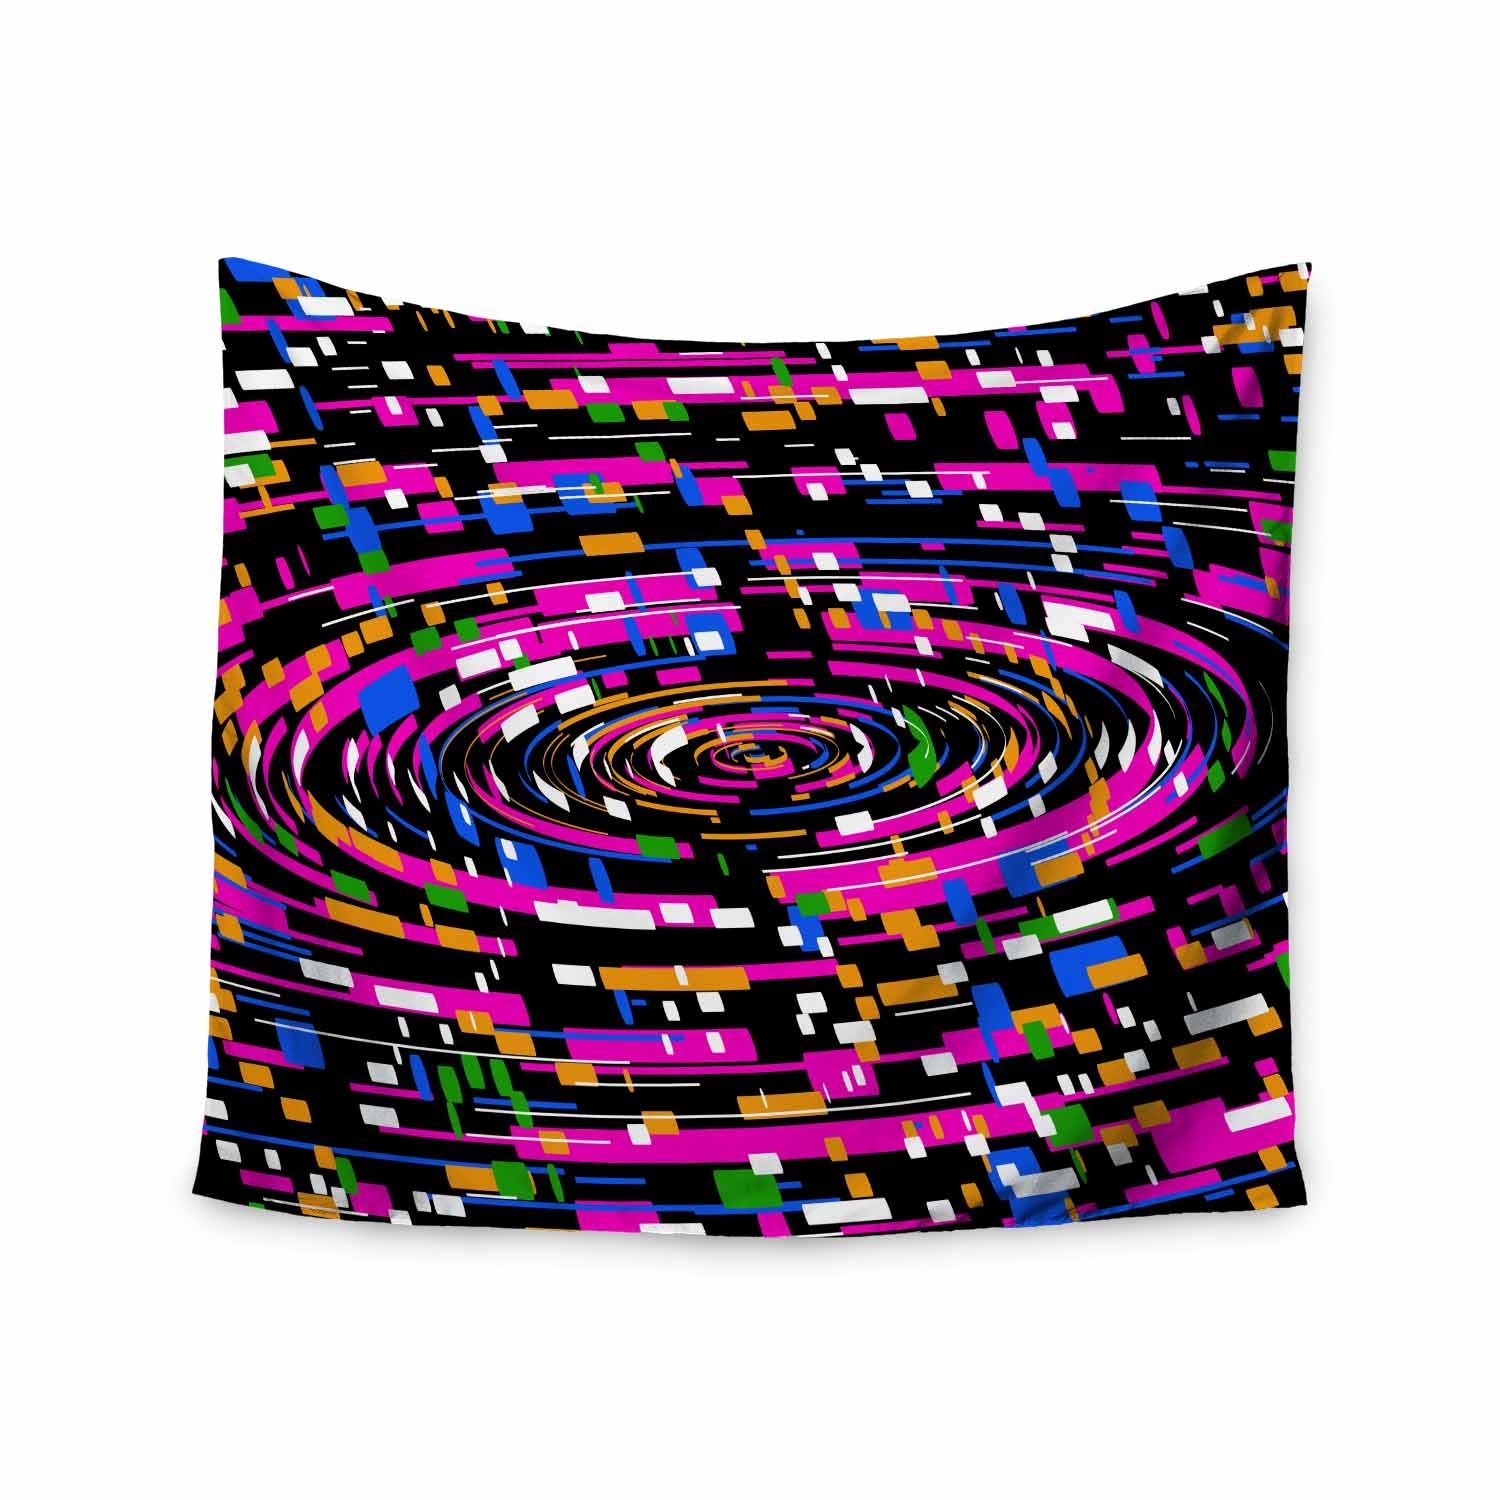 68 x 80 Wall Tapestry Kess InHouse Frederic Levy-Hadida Concentric Multicolor Pink Abstract Pop Art Digital Vector